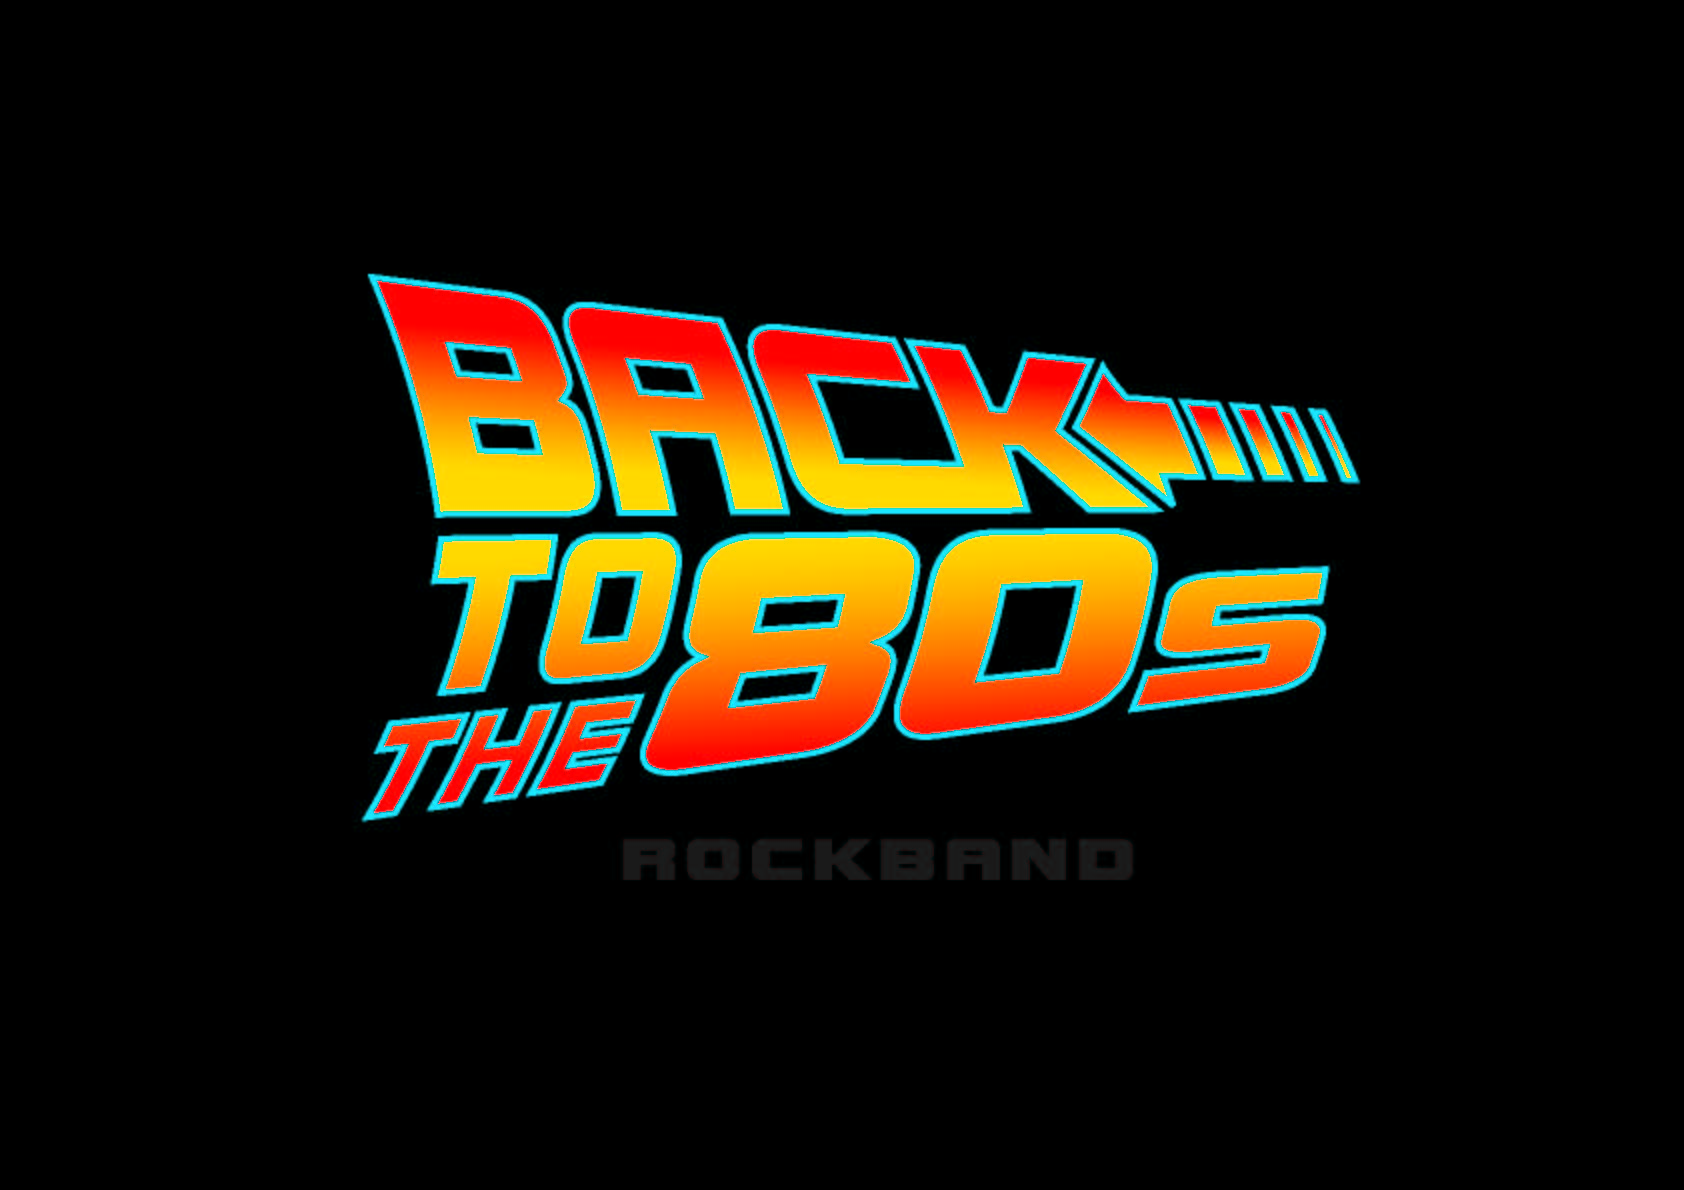 80s wallpaper wallpapersafari for 80s house music hits